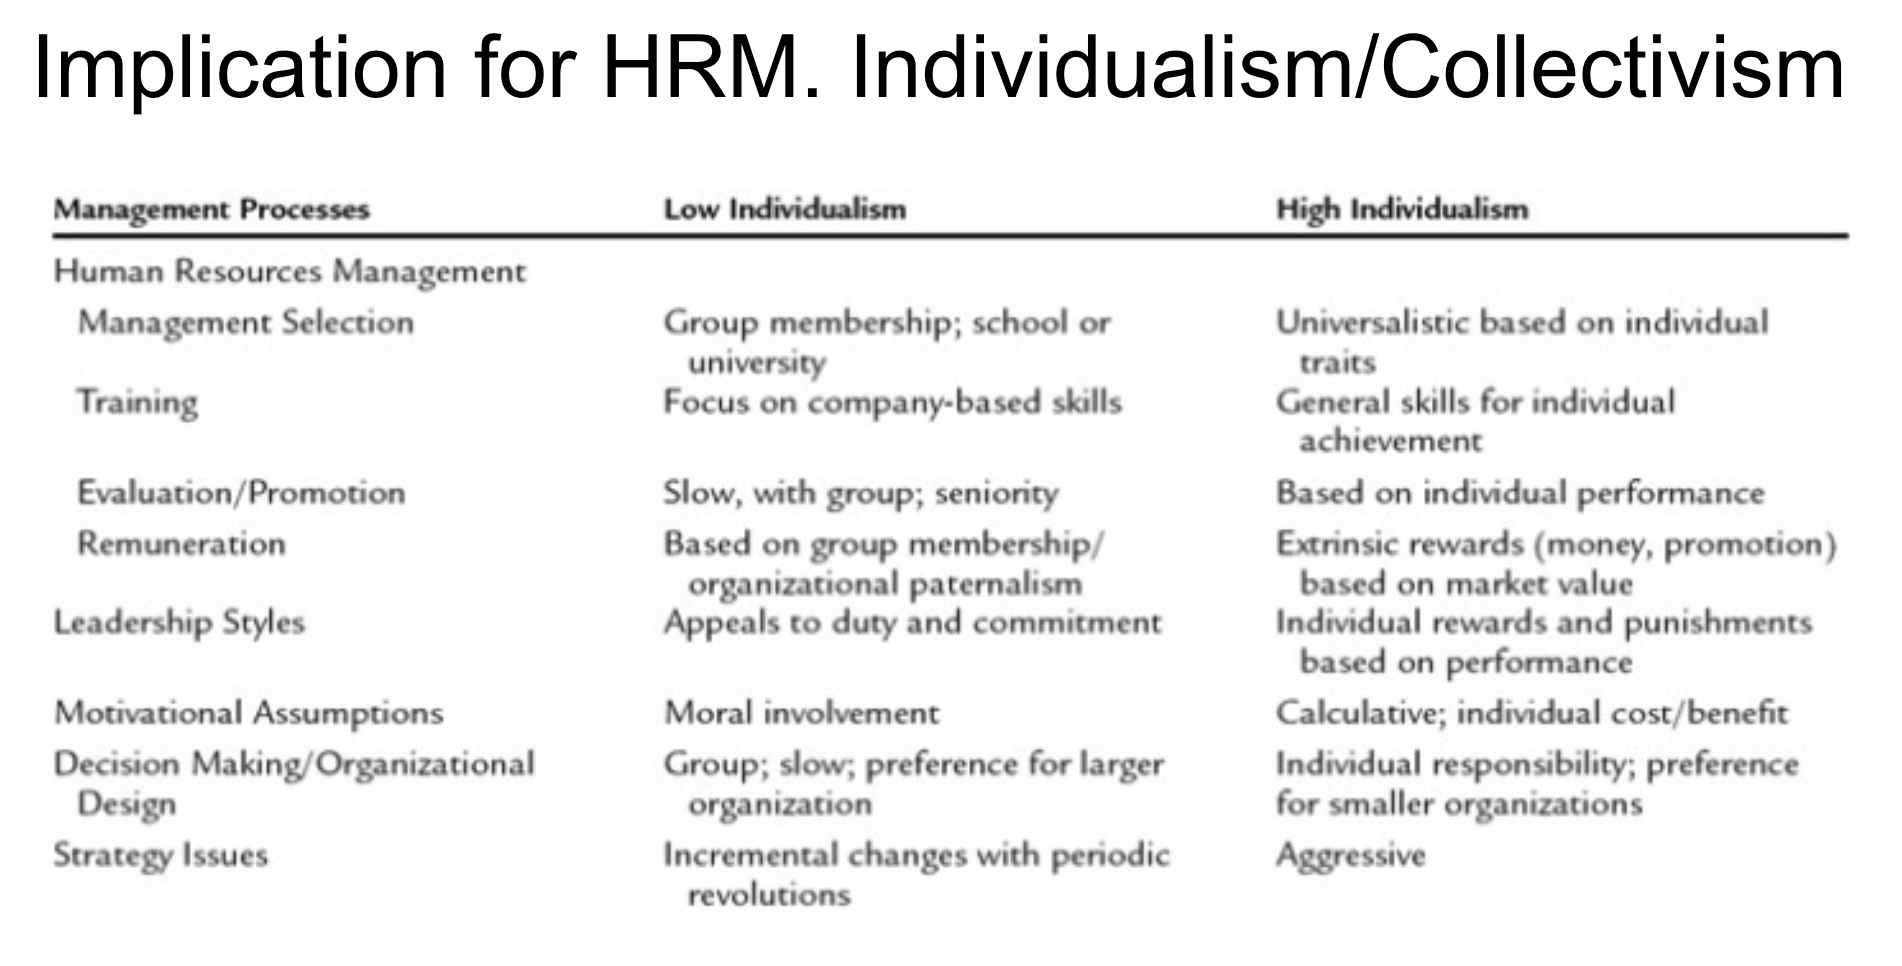 HRm and individualism